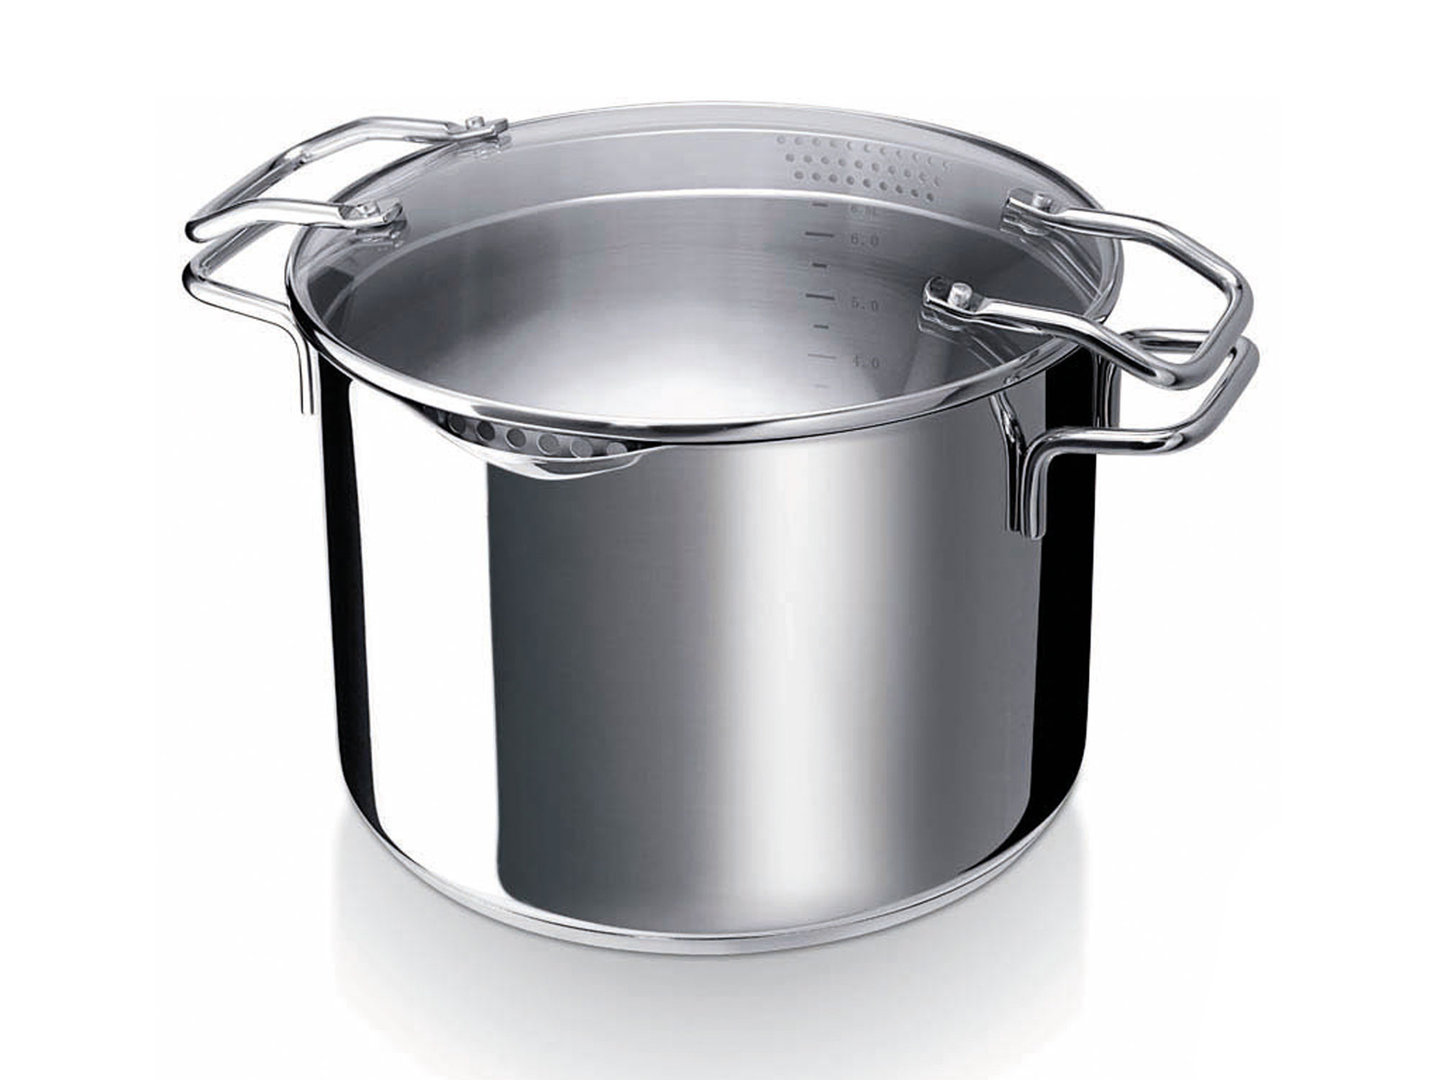 BEKA pasta cooker EMPORO 24 cm stainless steel easy straining casserole induction